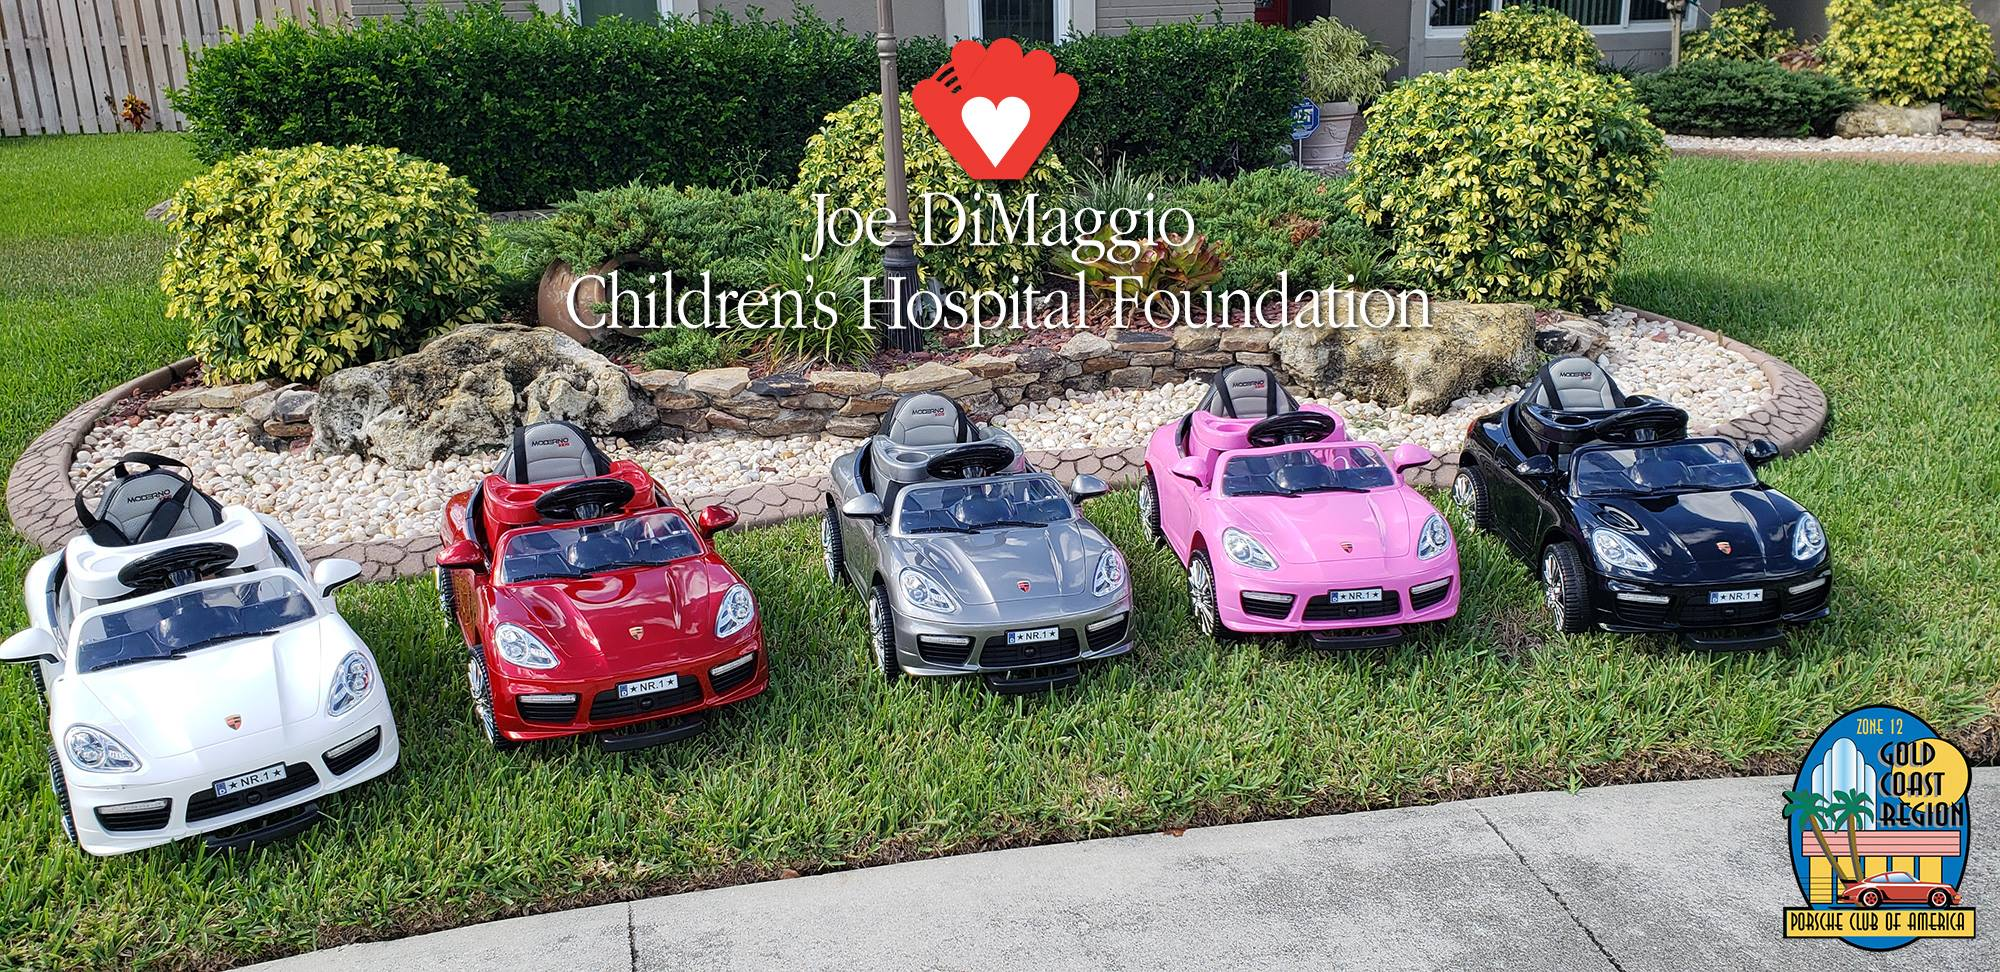 PCA Gold Coast Region Donates to Joe DiMaggio Children's Hospital